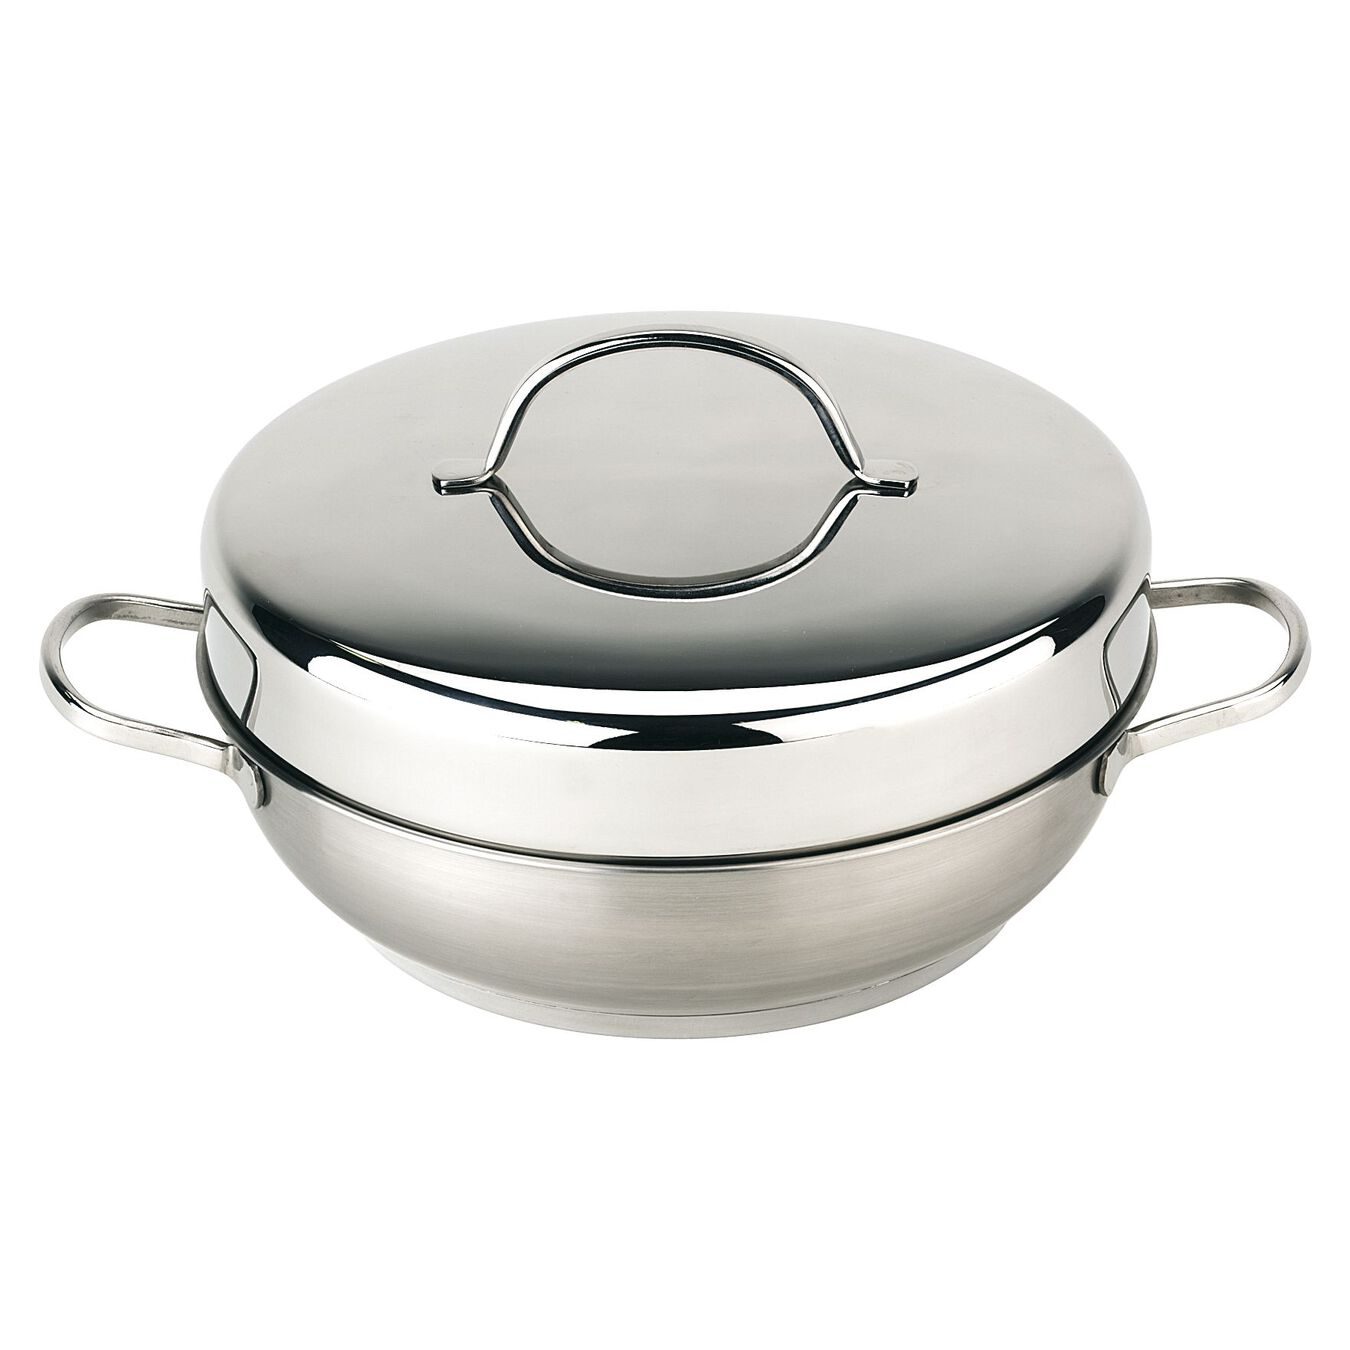 18/10 Stainless Steel Set de fumage,,large 1